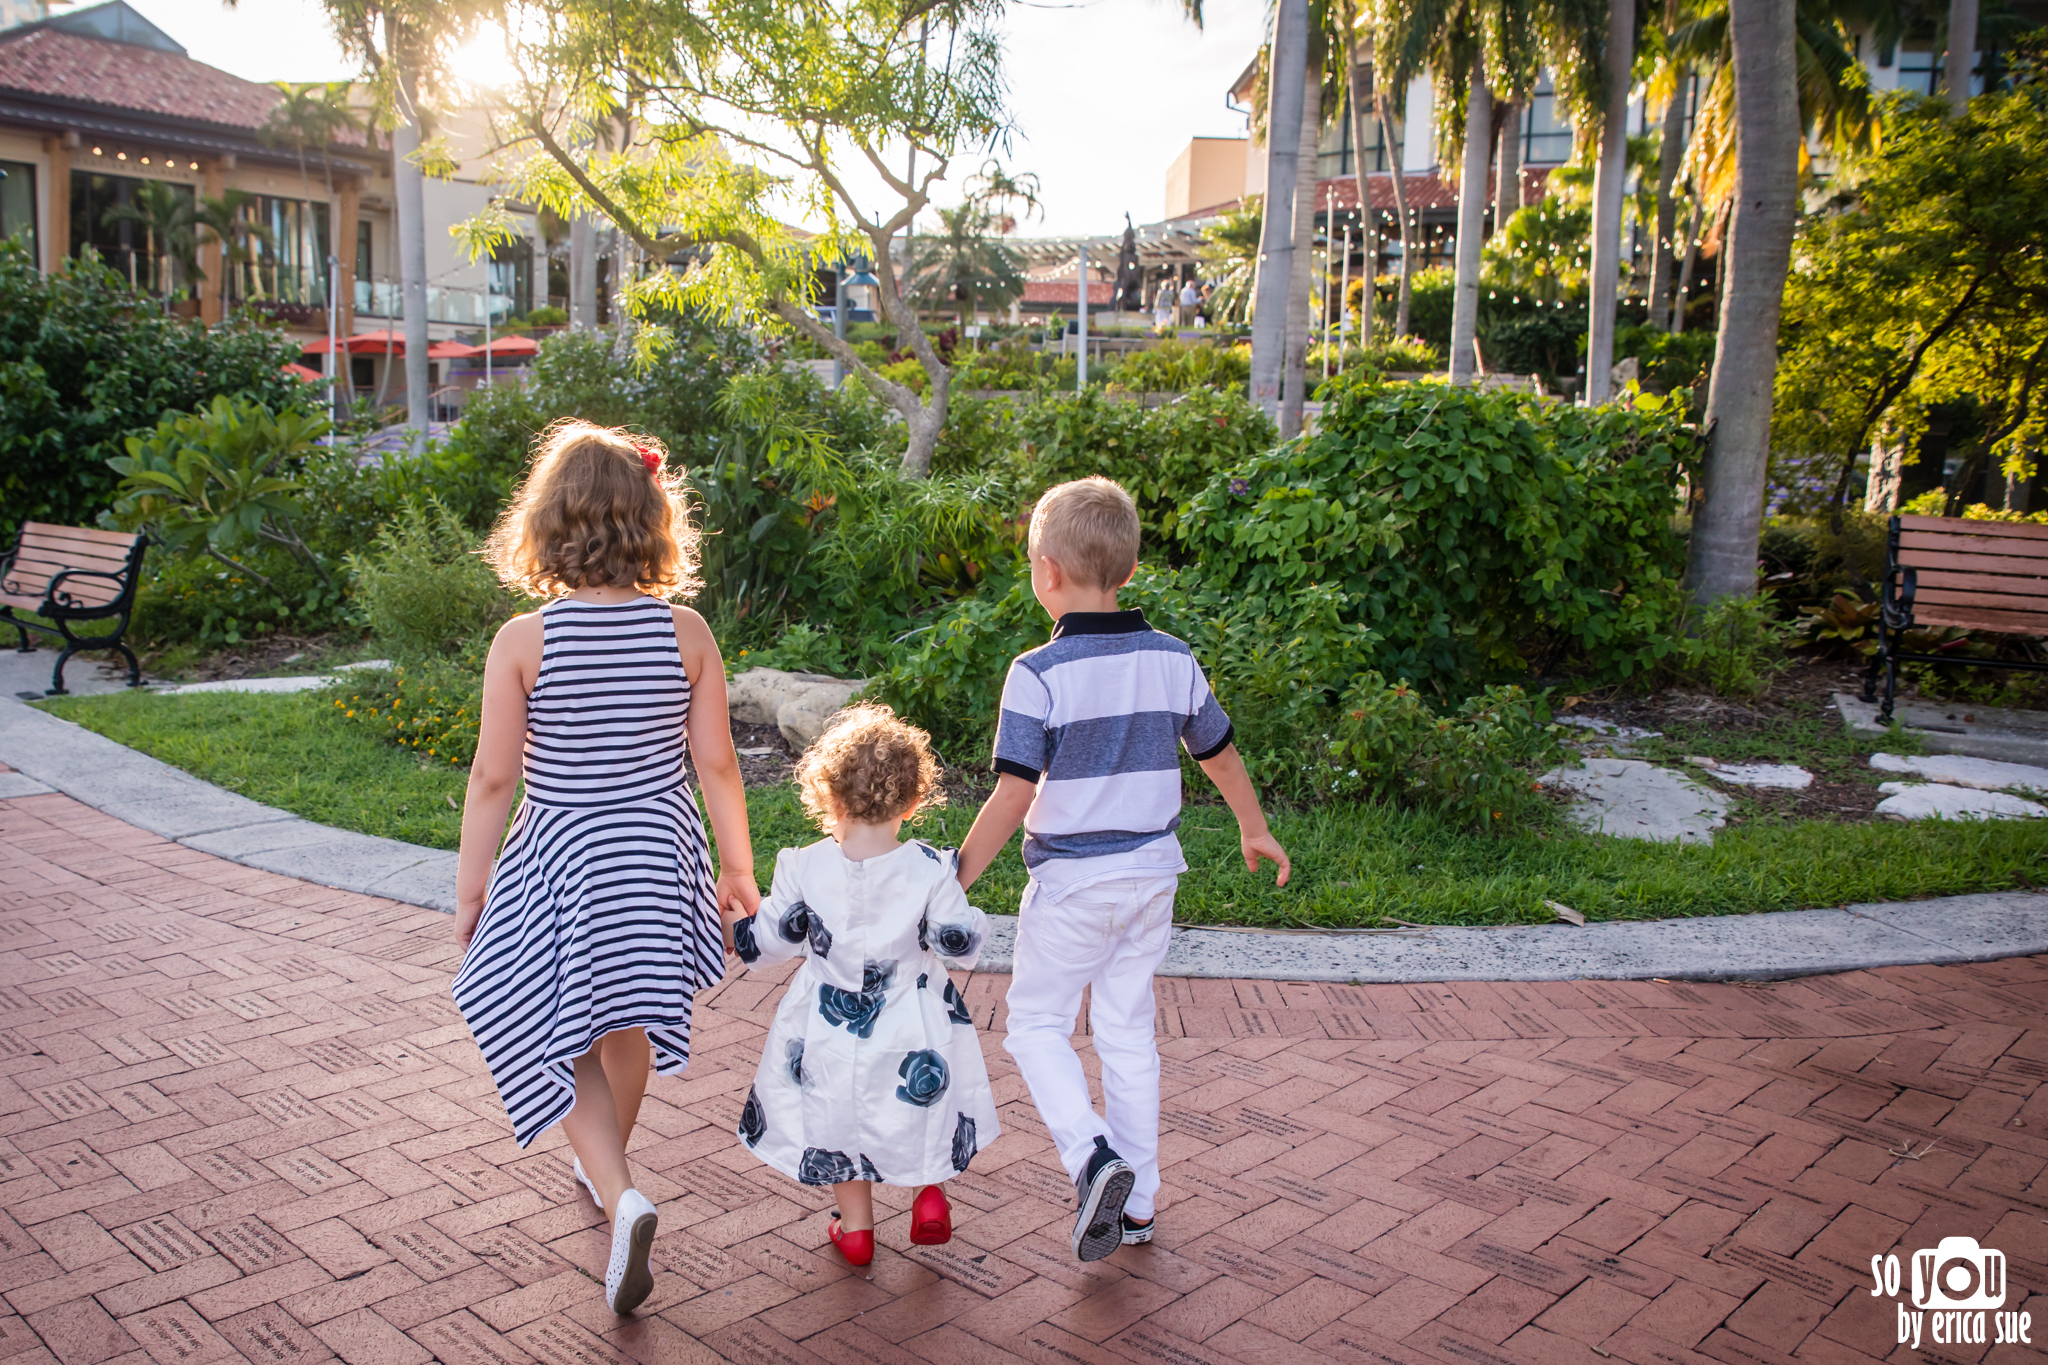 ft-lauderdale-lifestyle-family-photography-so-you-by-erica-sue--4.jpg